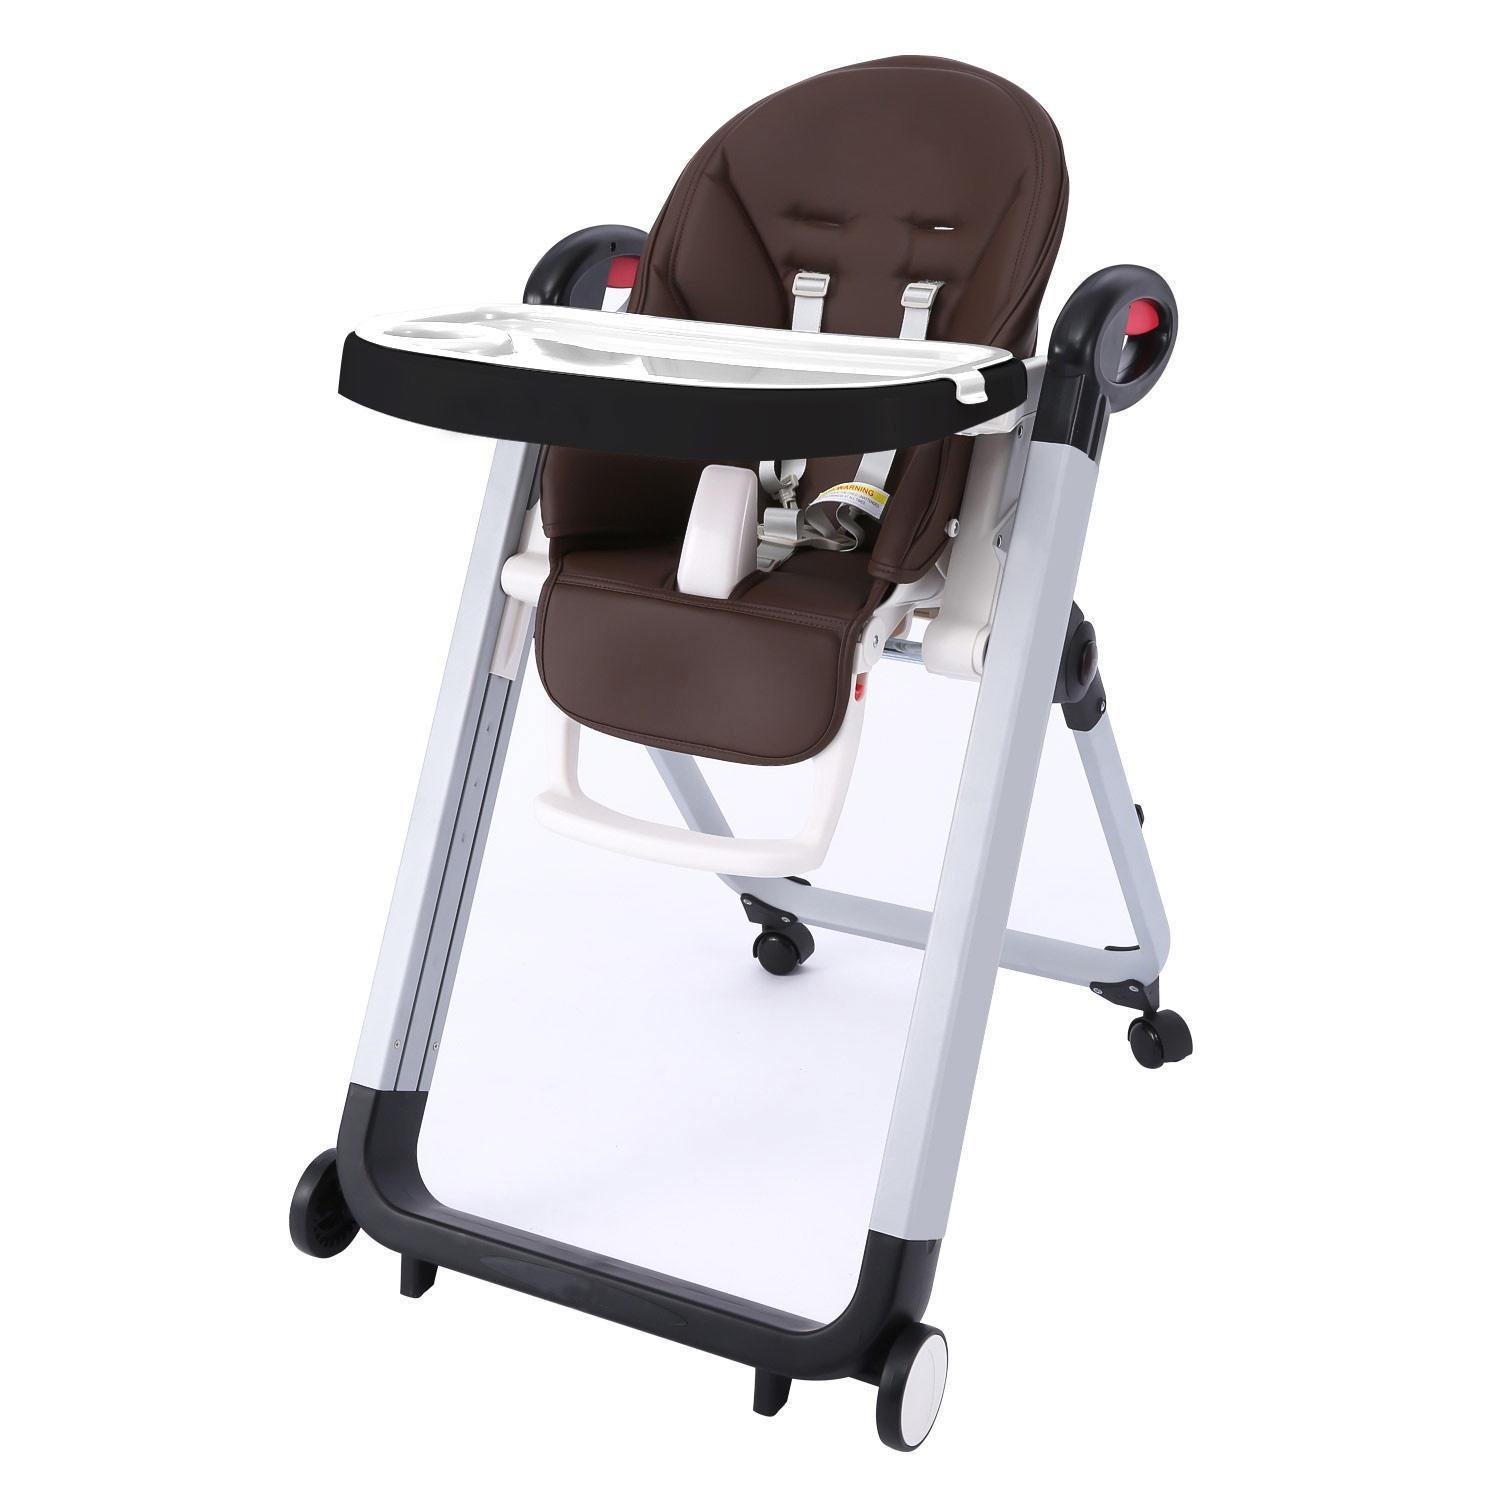 PEATAO Convertible High Chair for Baby Kids, Booster Toddler Dining Table Chair with Wheels (Dark Brown)